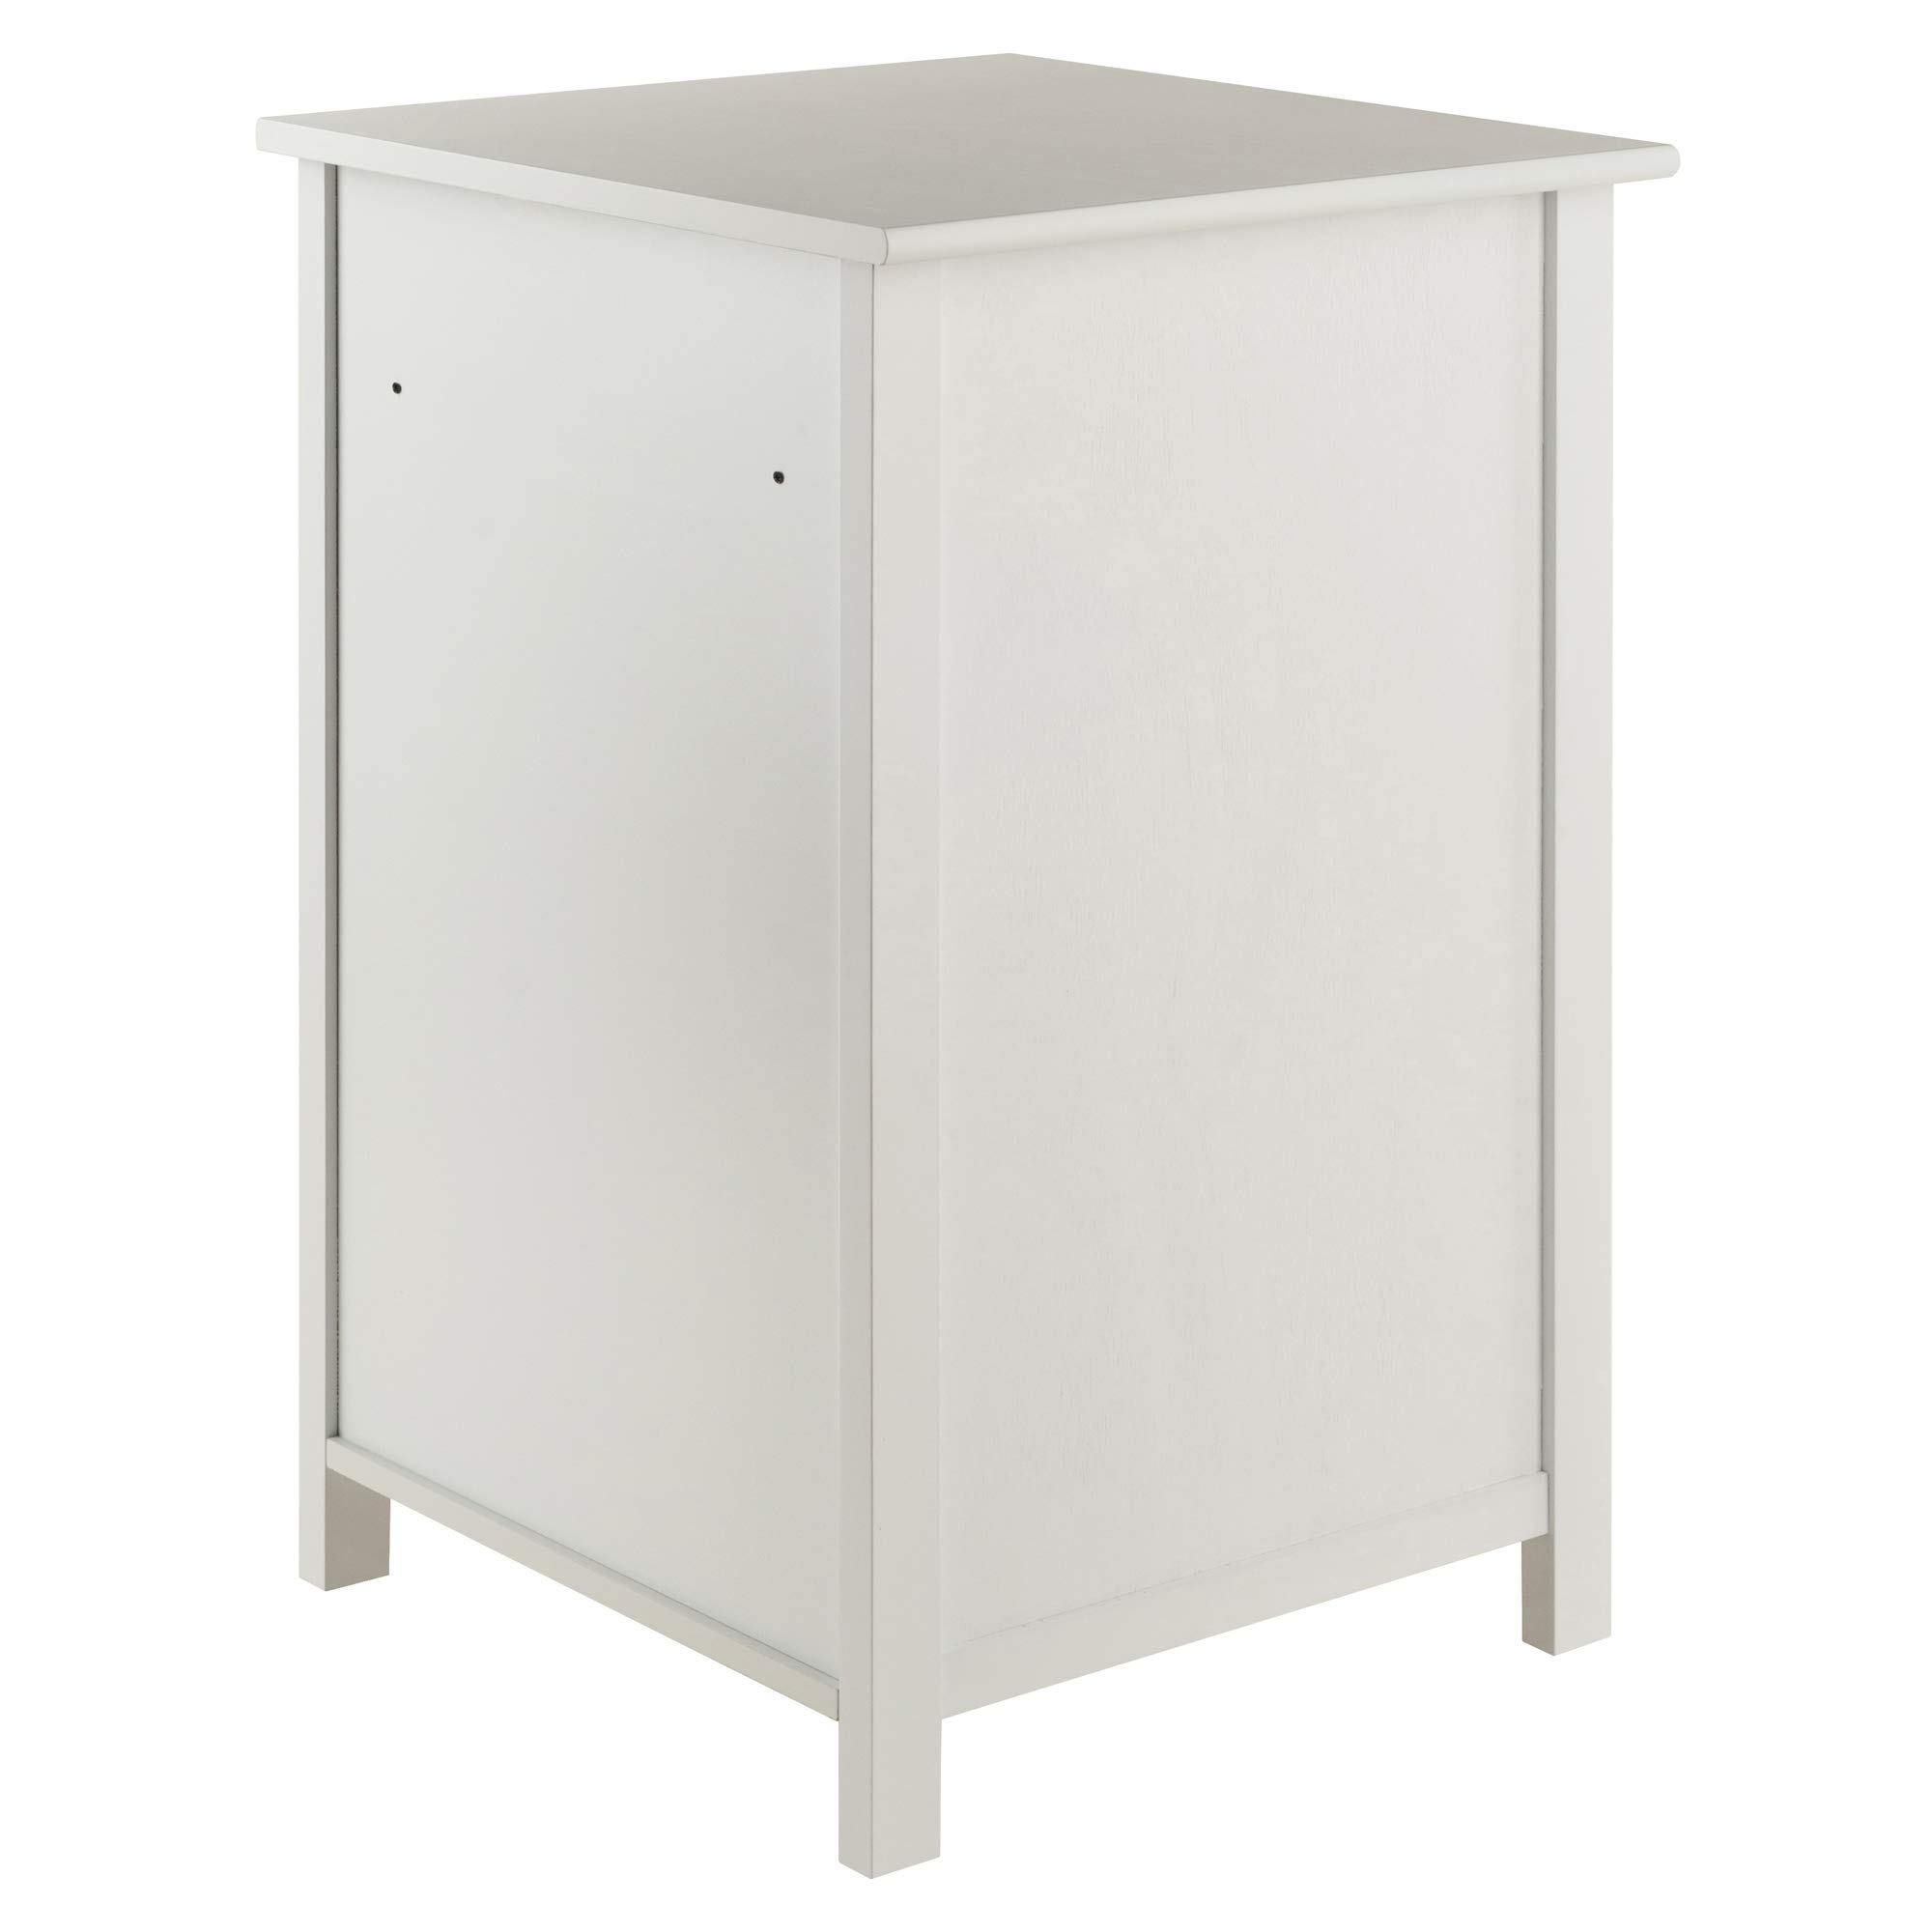 Winsome Wood 10321 Delta File Cabinet White Home Office, by Winsome Wood (Image #7)